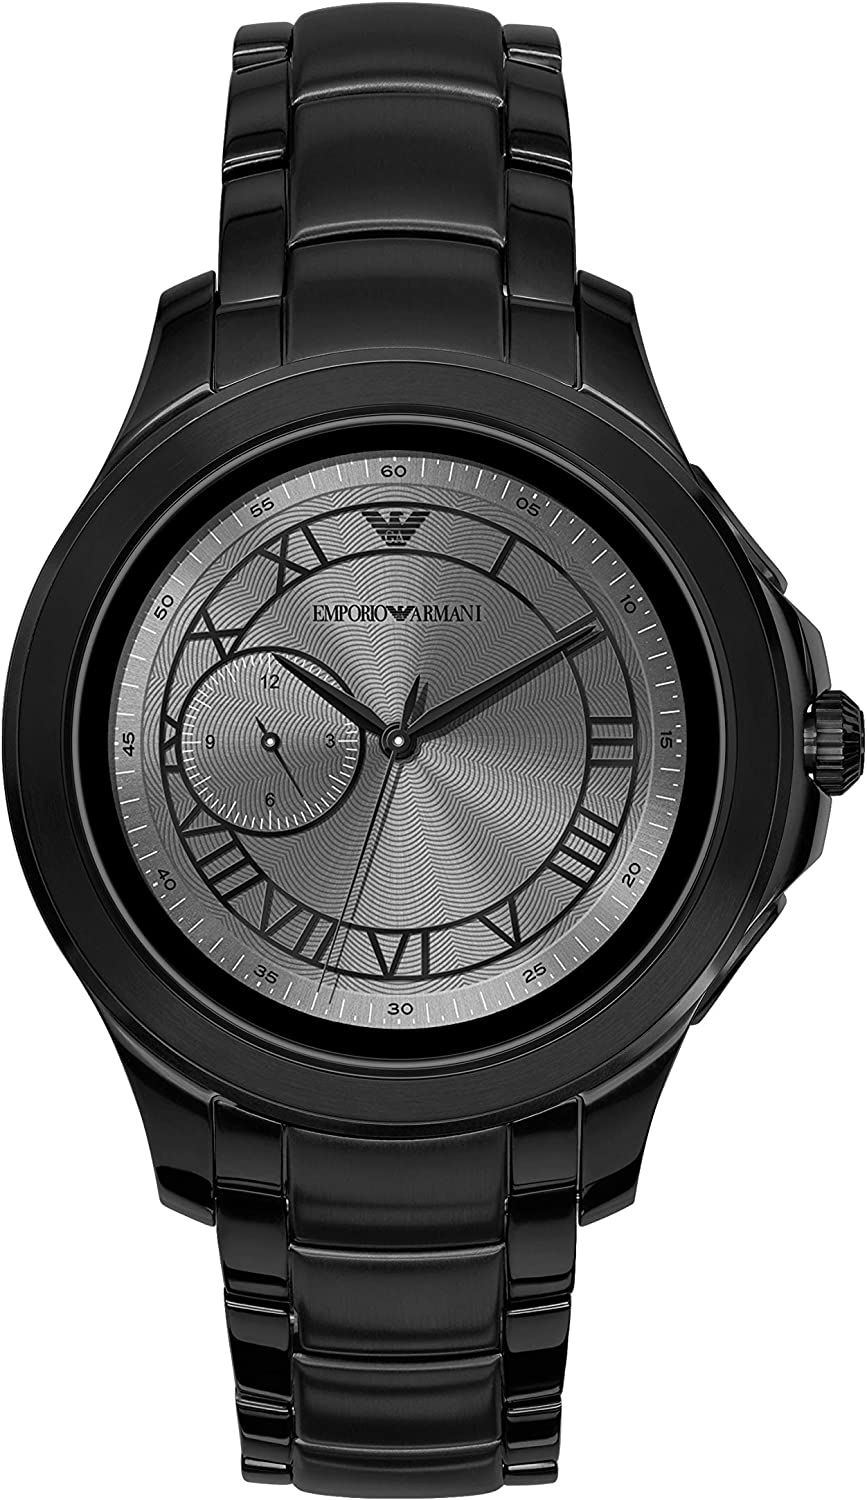 Emporio Armani Mens Dress Smartwatch 2 Powered with Wear OS by Google with Heart Rate, GPS, NFC, and Smartphone Notifications